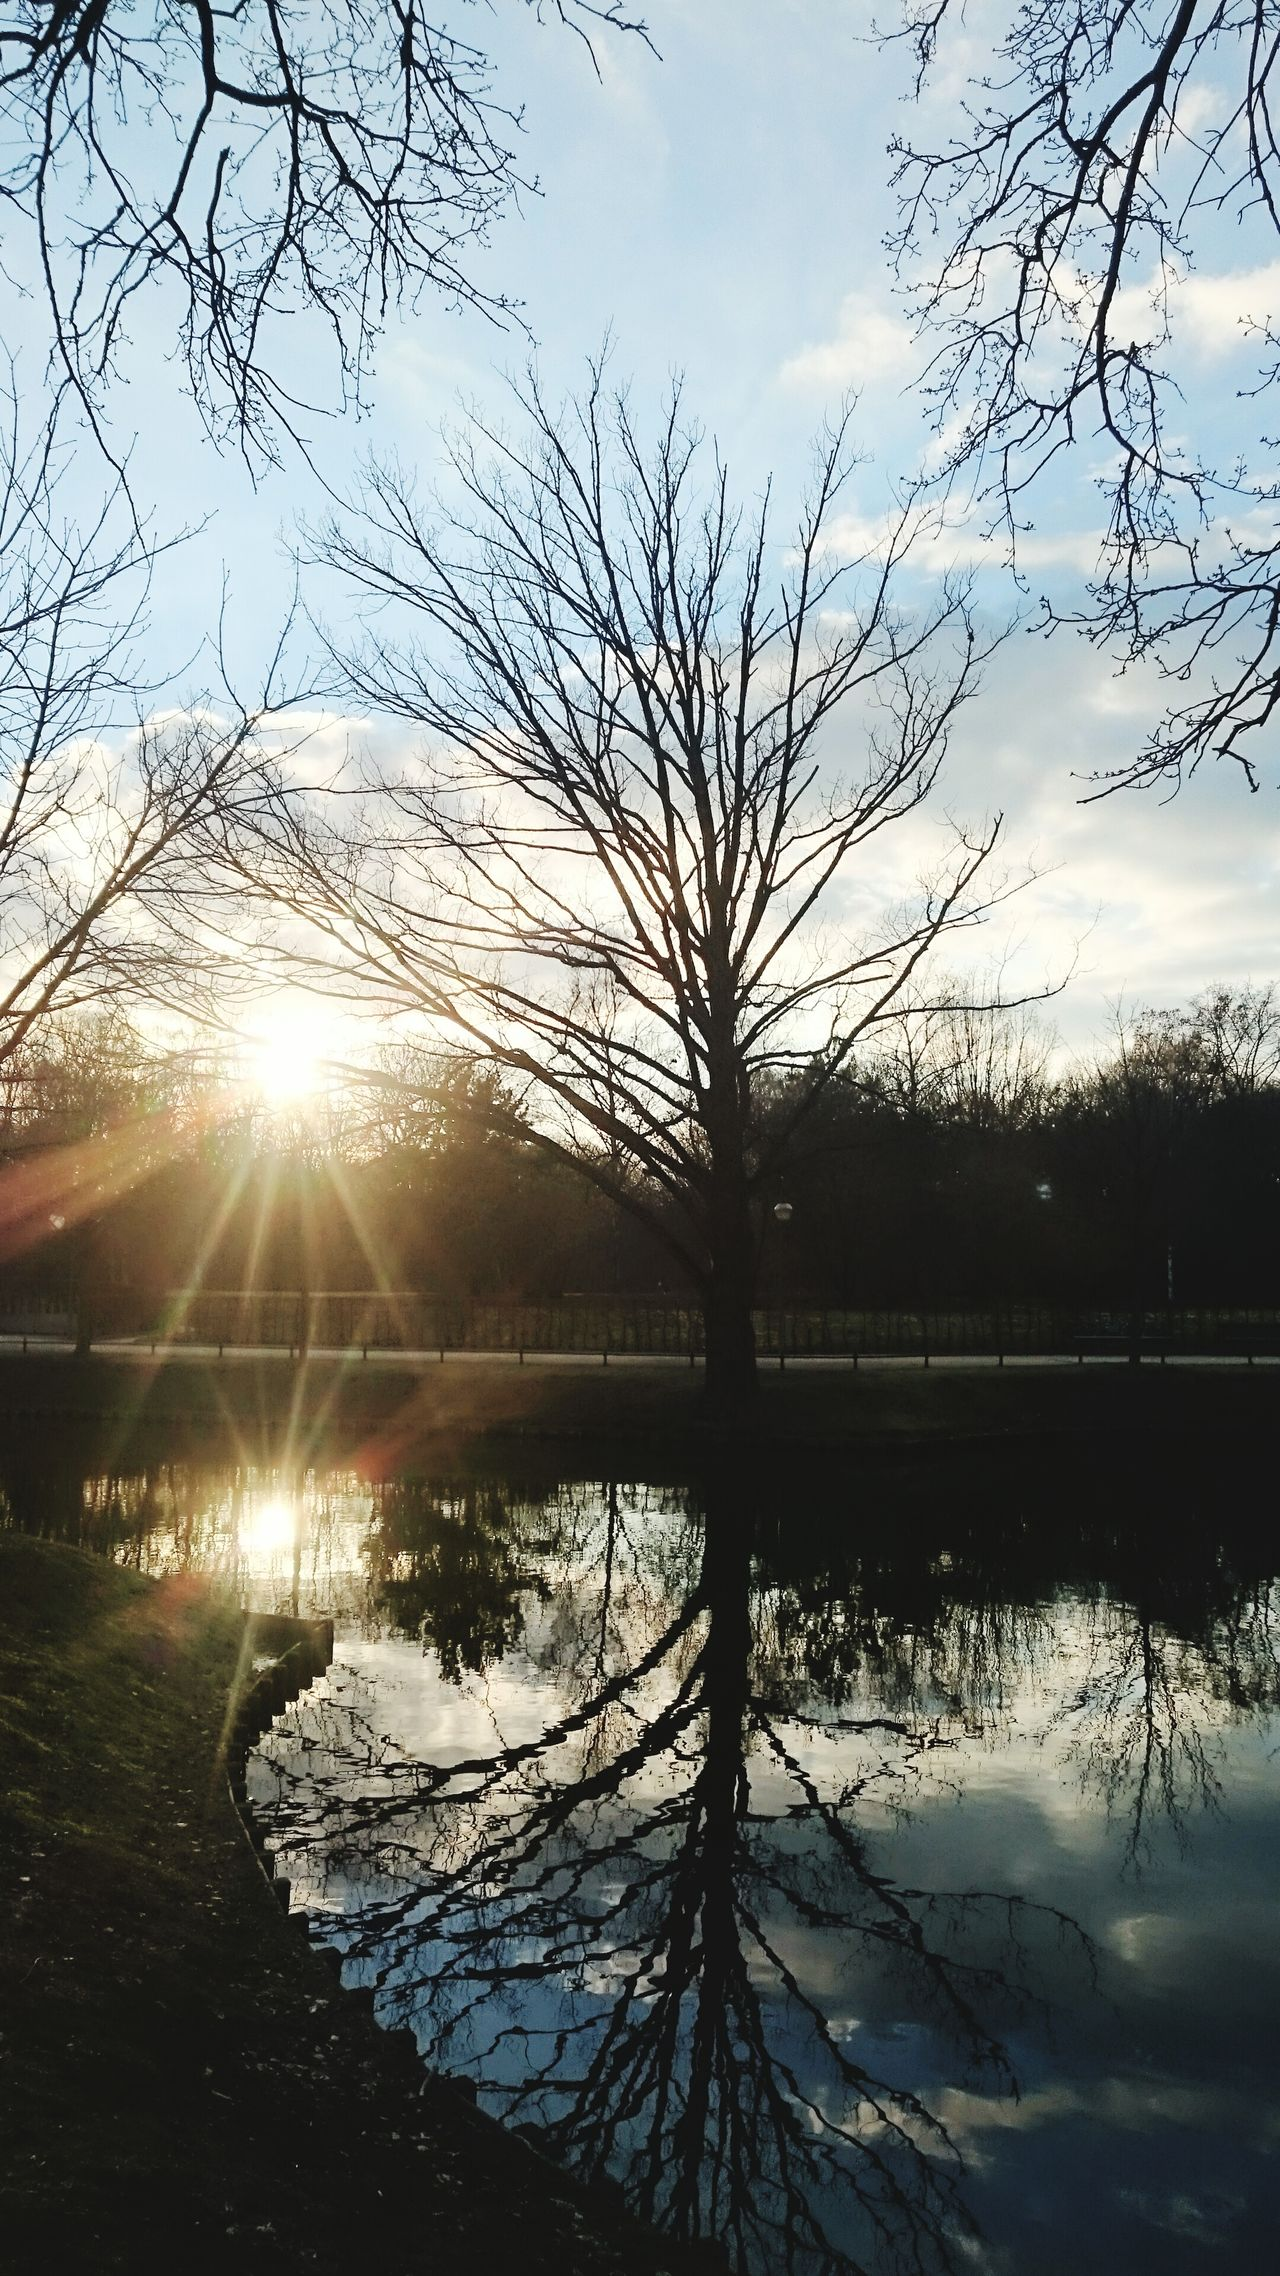 Reflection Water Lake Nature Sky Tree Sunlight Sunset Sun Outdoors No People Reflection Lake Tranquility Scenics Reed - Grass Family Day